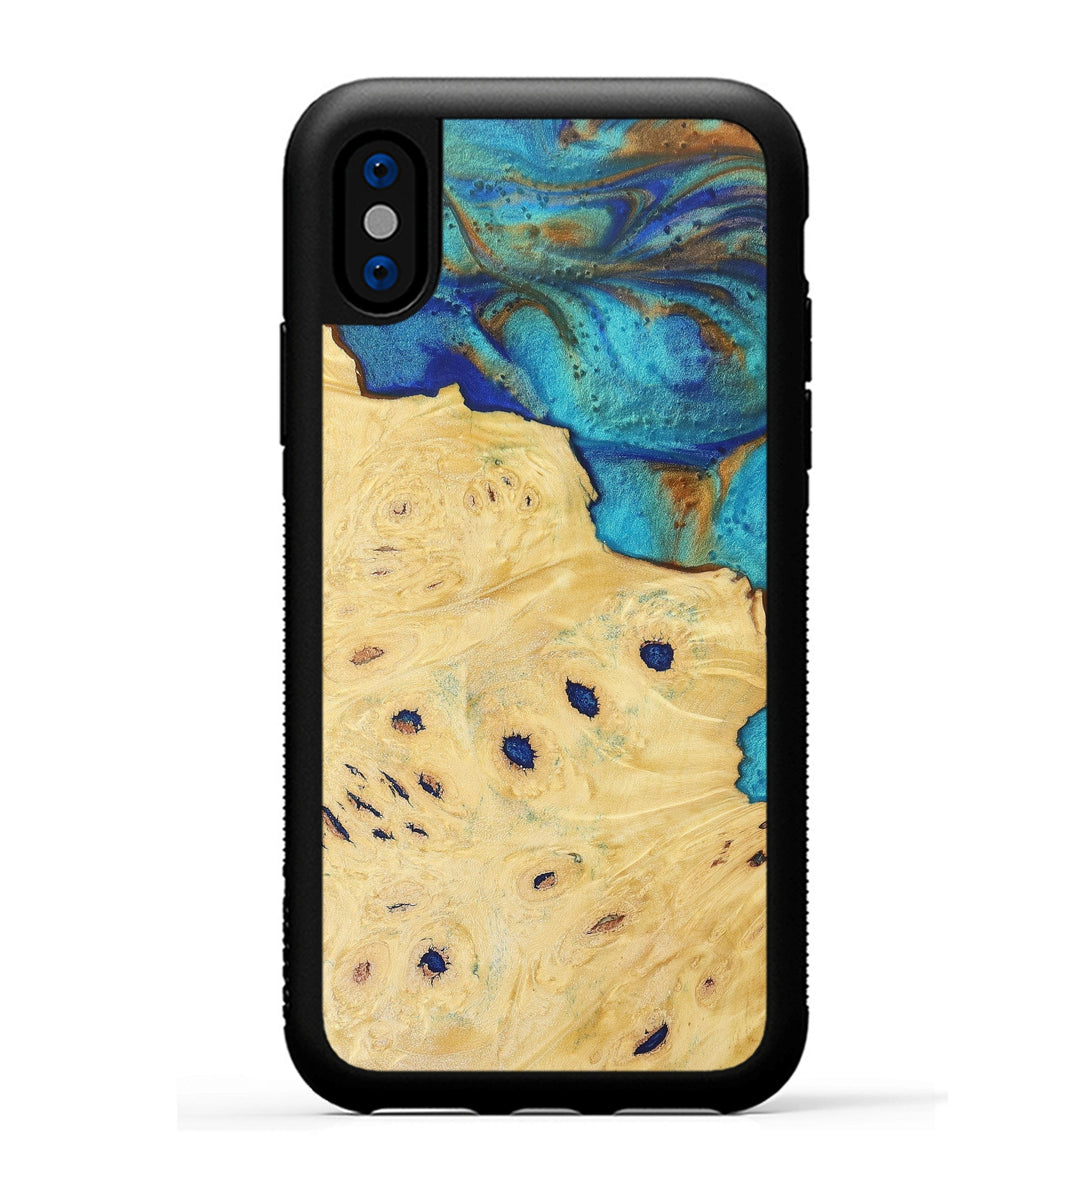 iPhone Xs Wood+Resin Phone Case - Bettye (Teal & Gold, 369979)